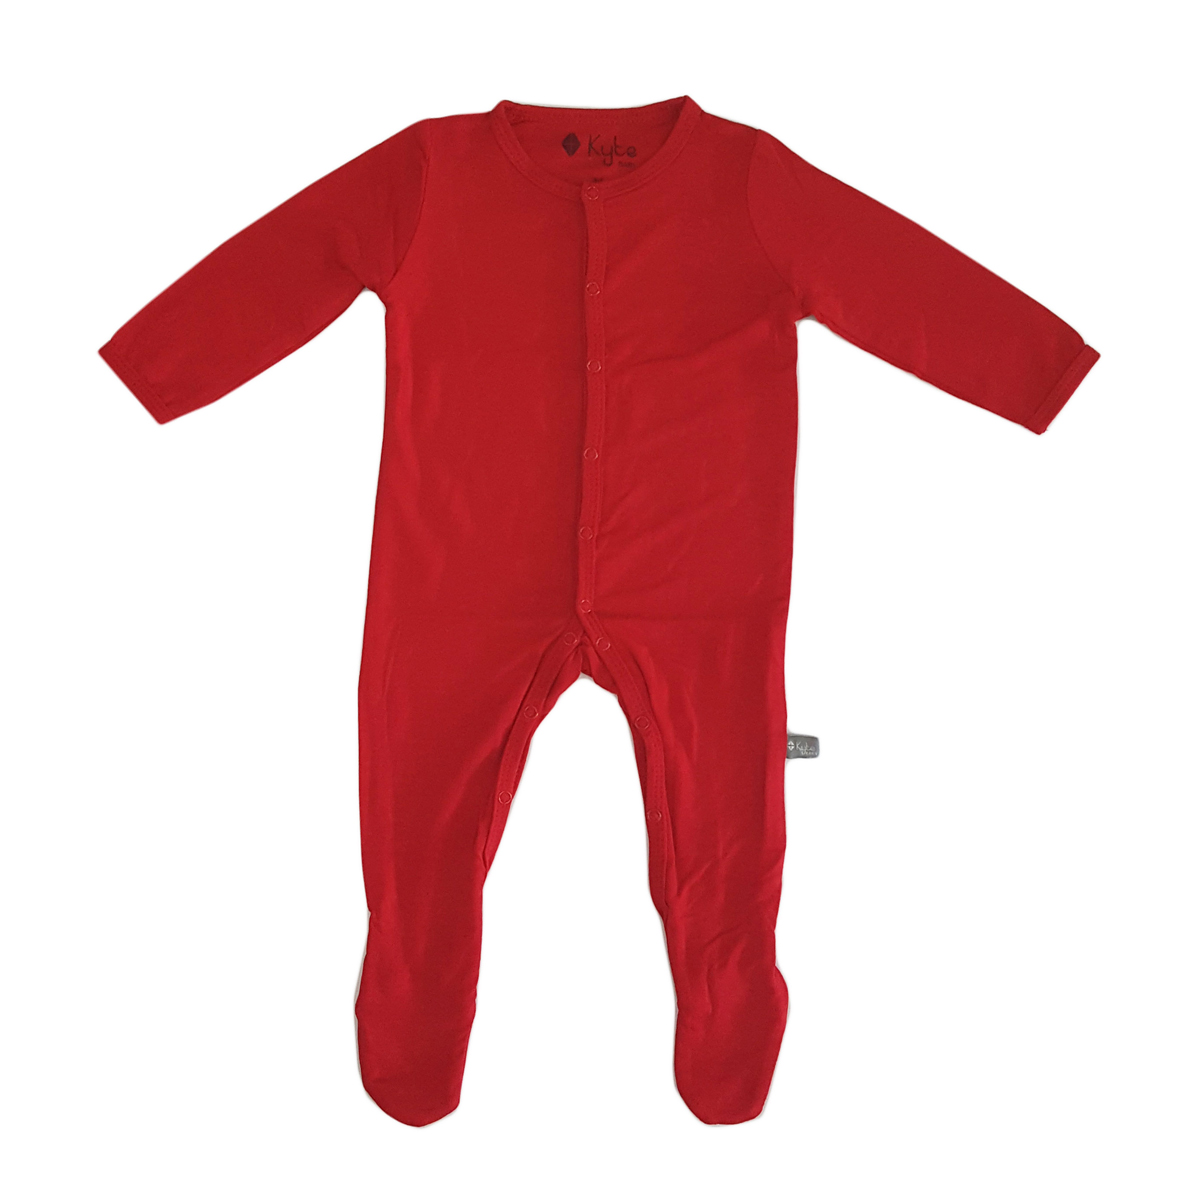 Kyte Baby Solid Footies